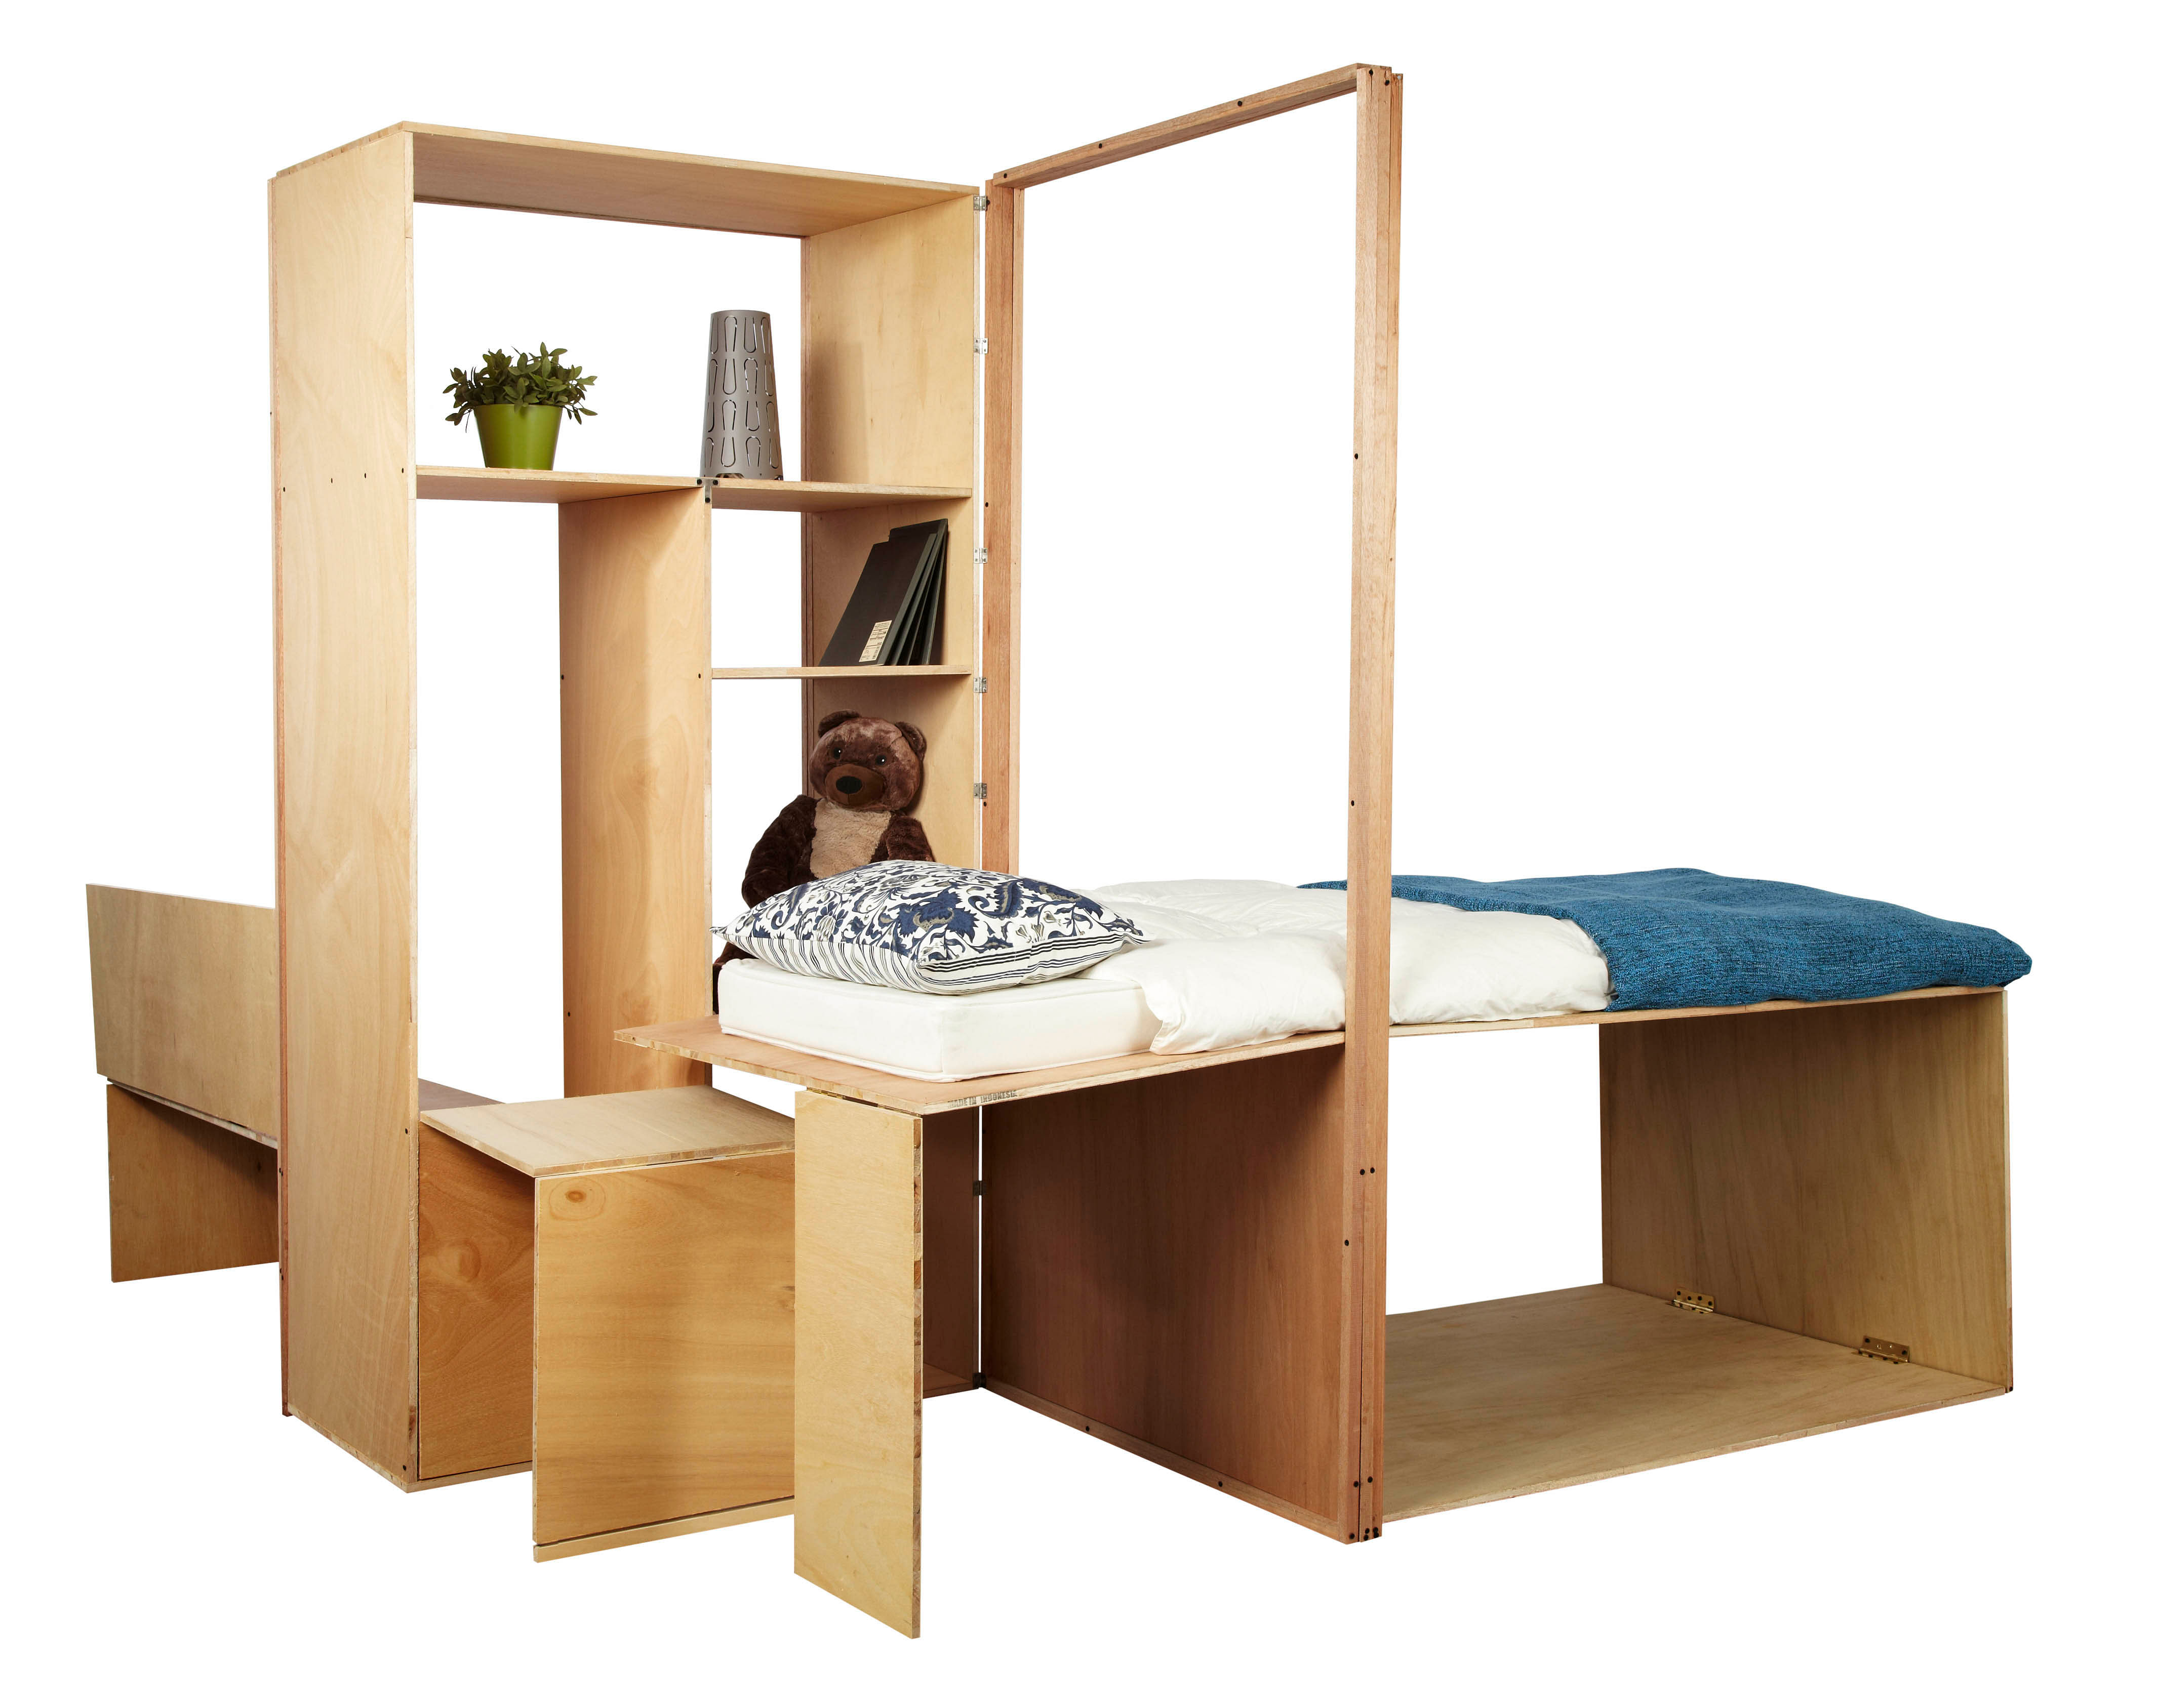 Space Saving Furniture At Ikea 39 S Student Competition Home Decor Singapore